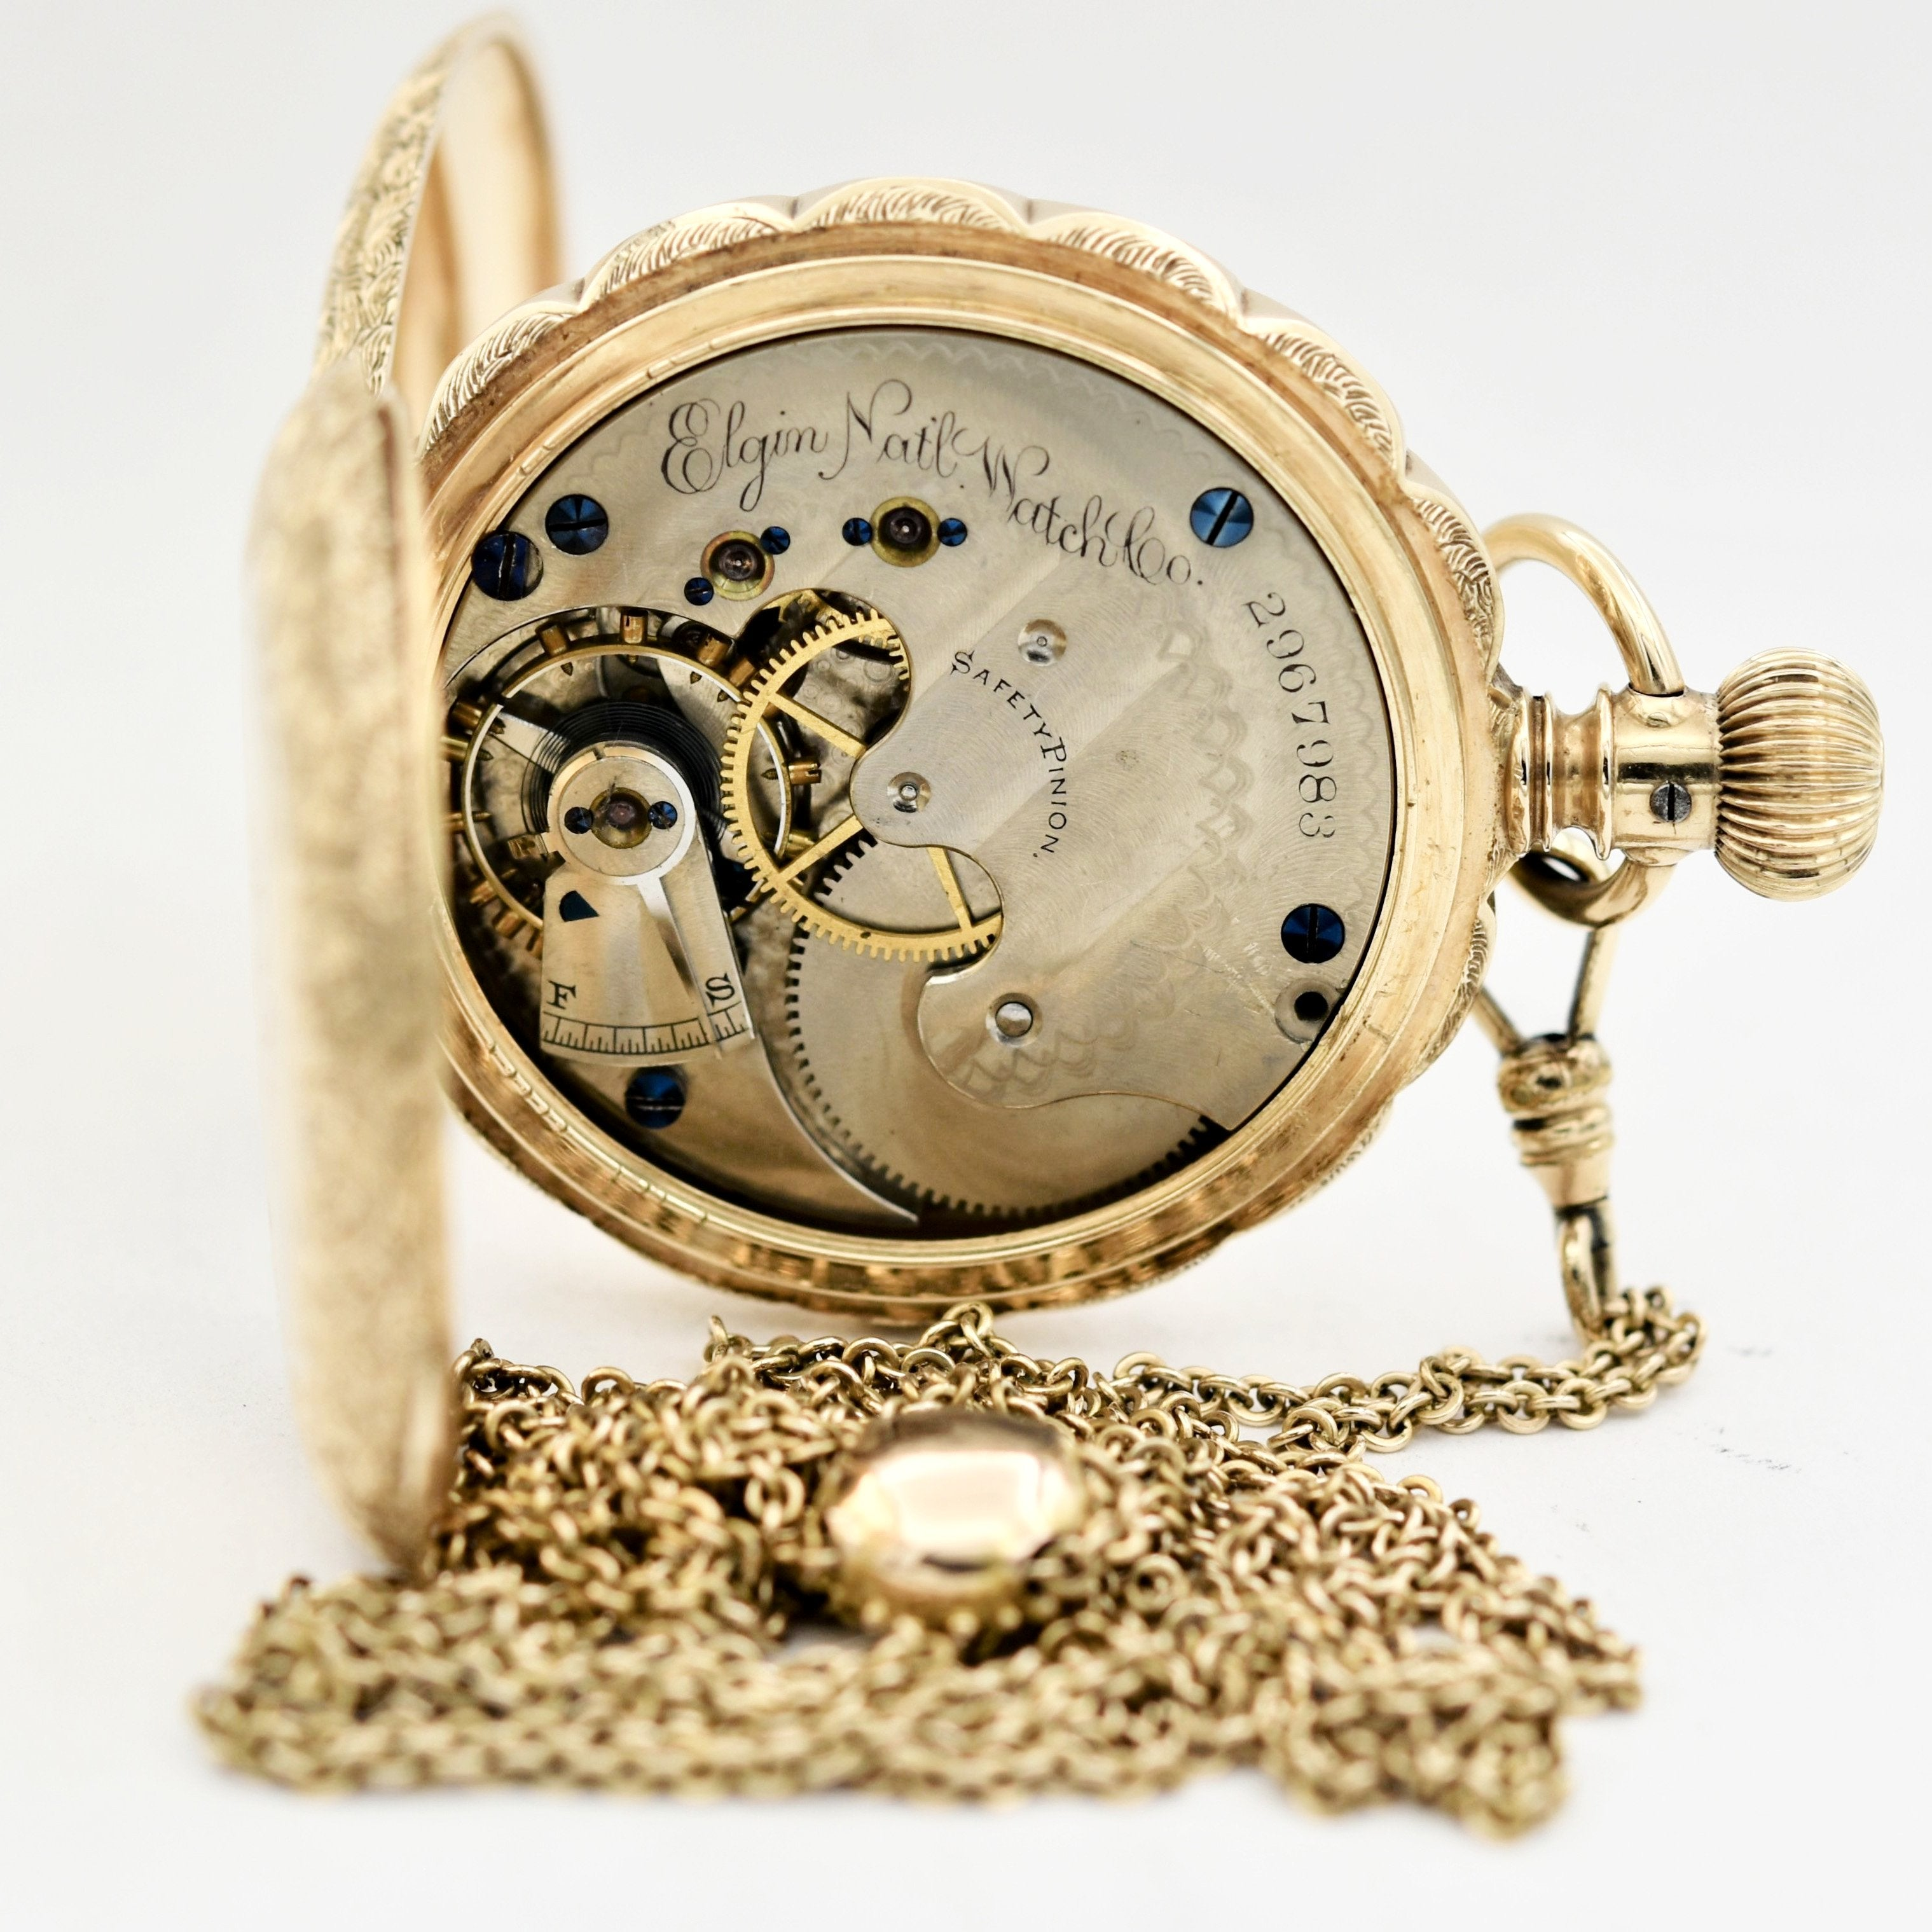 607be7f39 ELGIN 14K Gold Pocket Watch with Chain Pocket Watches - Ashton-Blakey  Vintage Watches ...